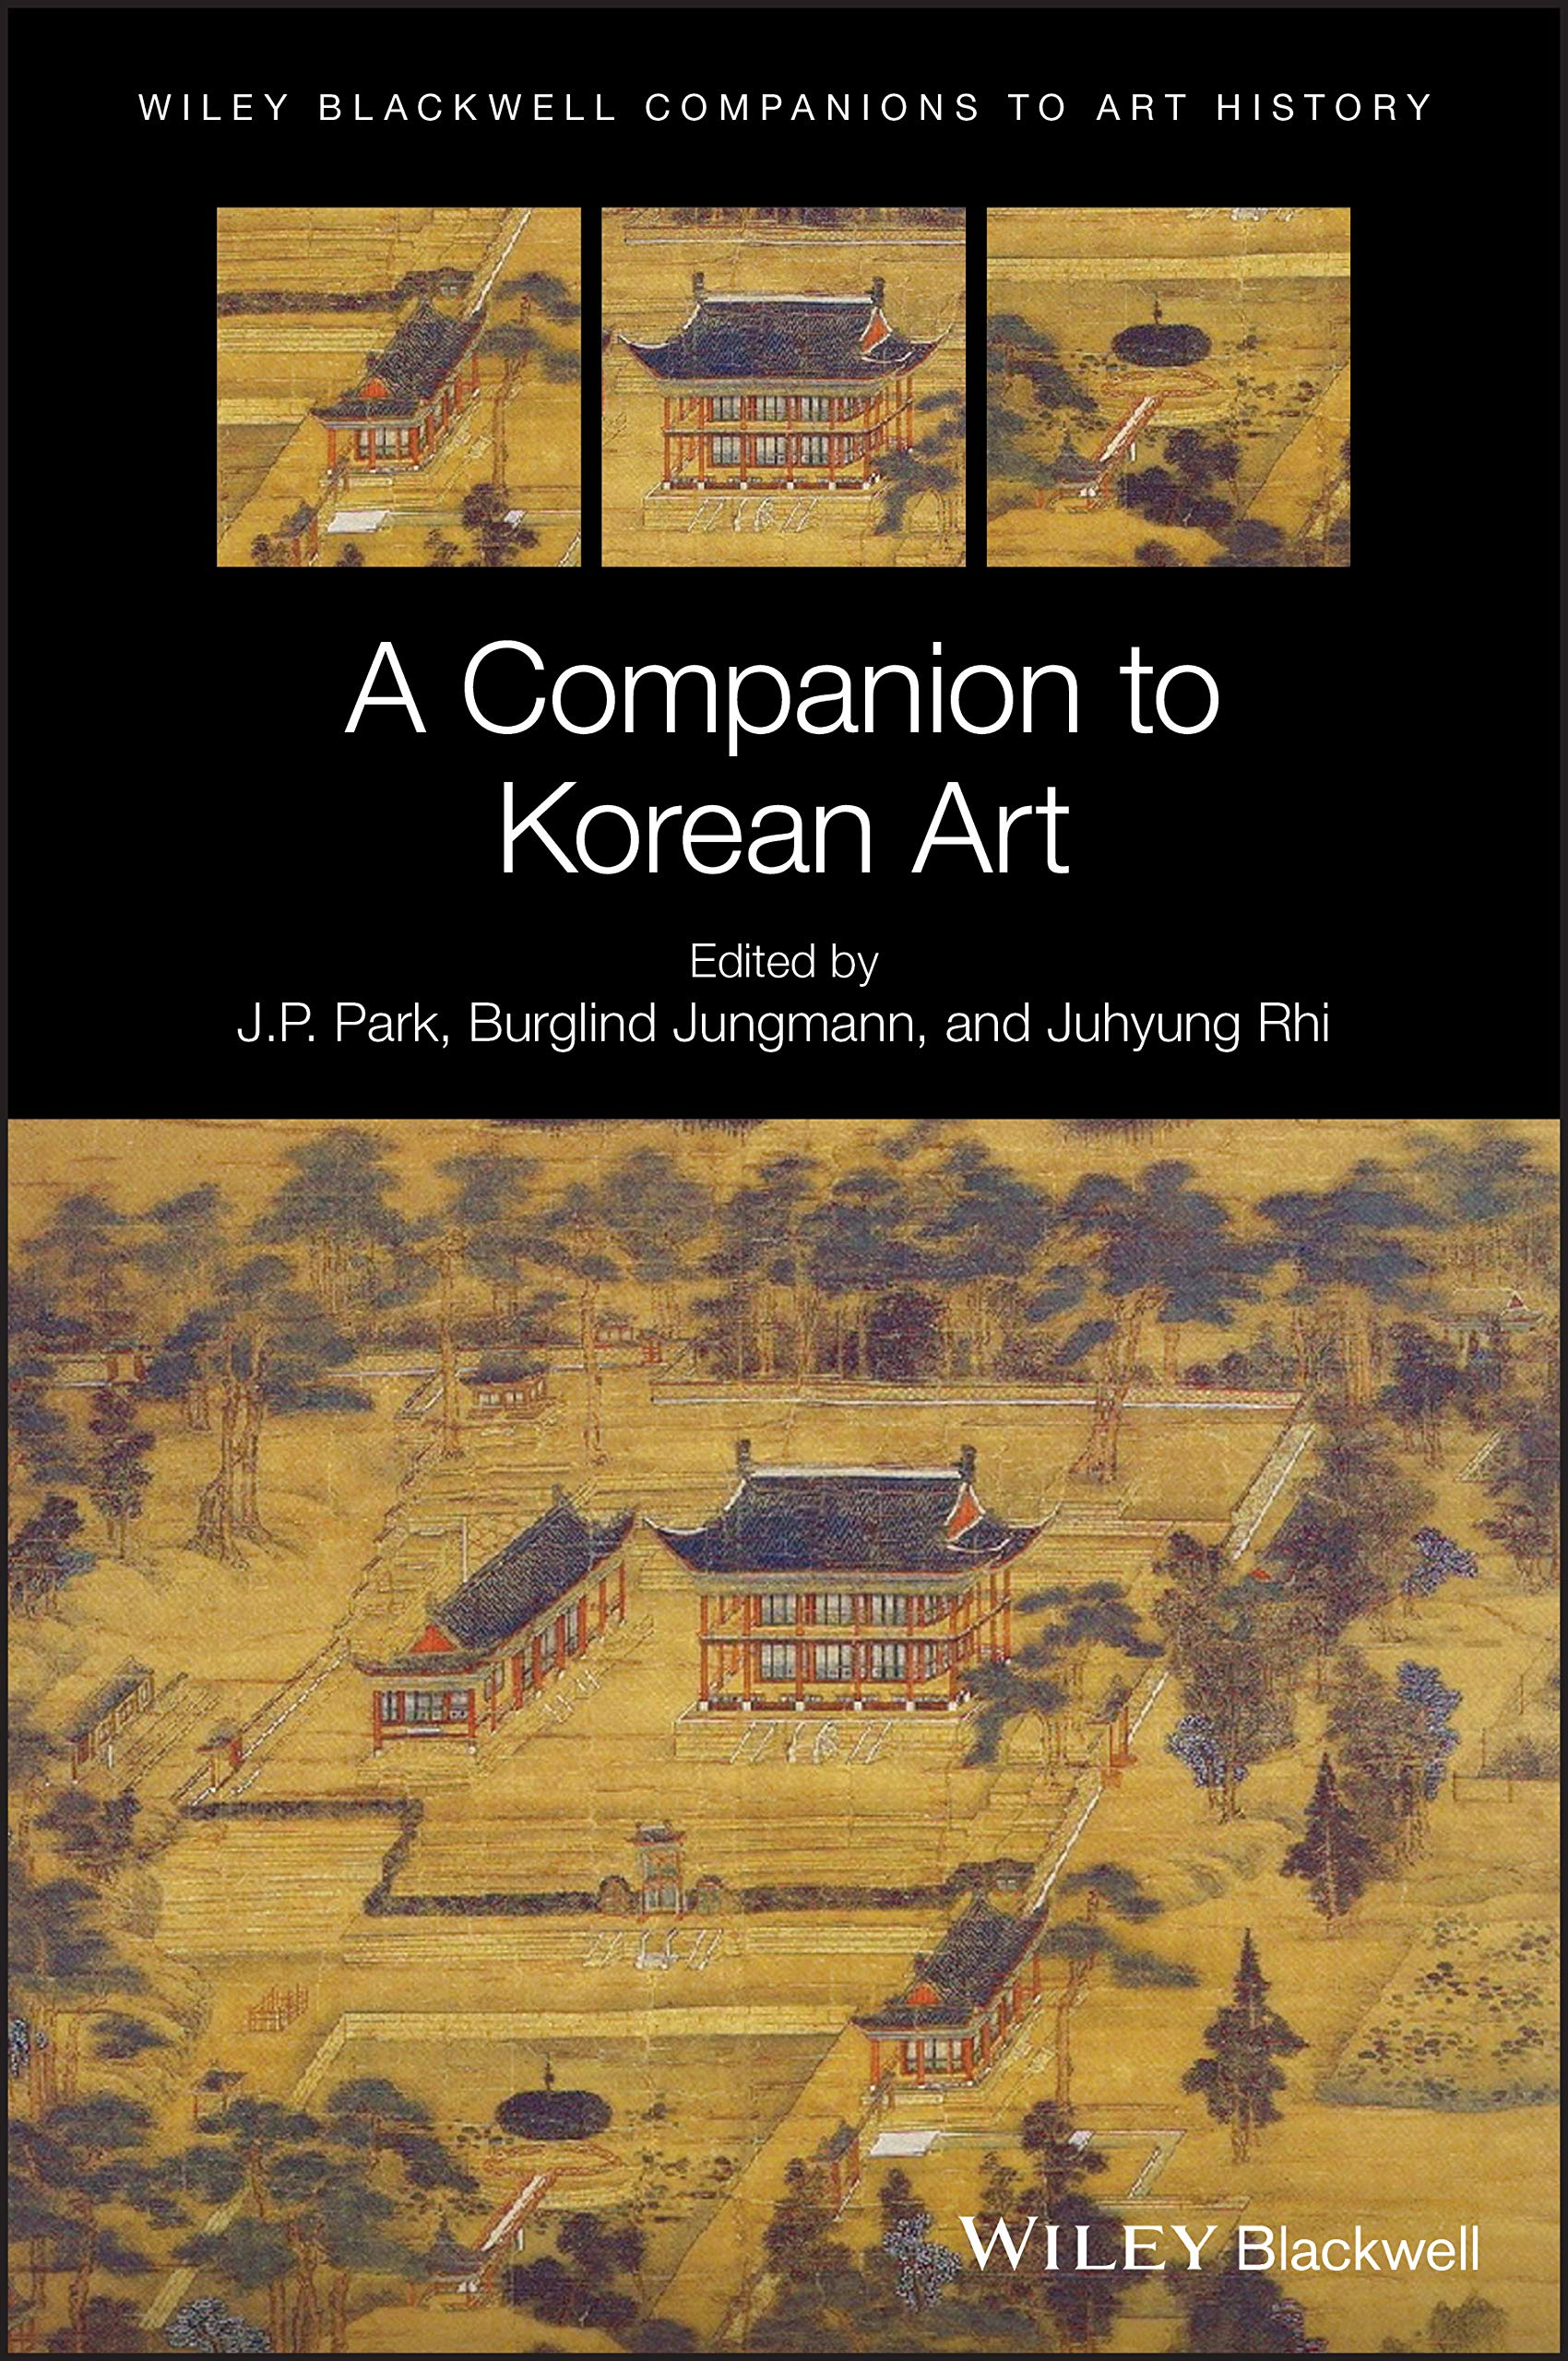 J.P. Park, Burglind Jungmann, and Juhyung Rhi (Editors): A Companion to Korean Art